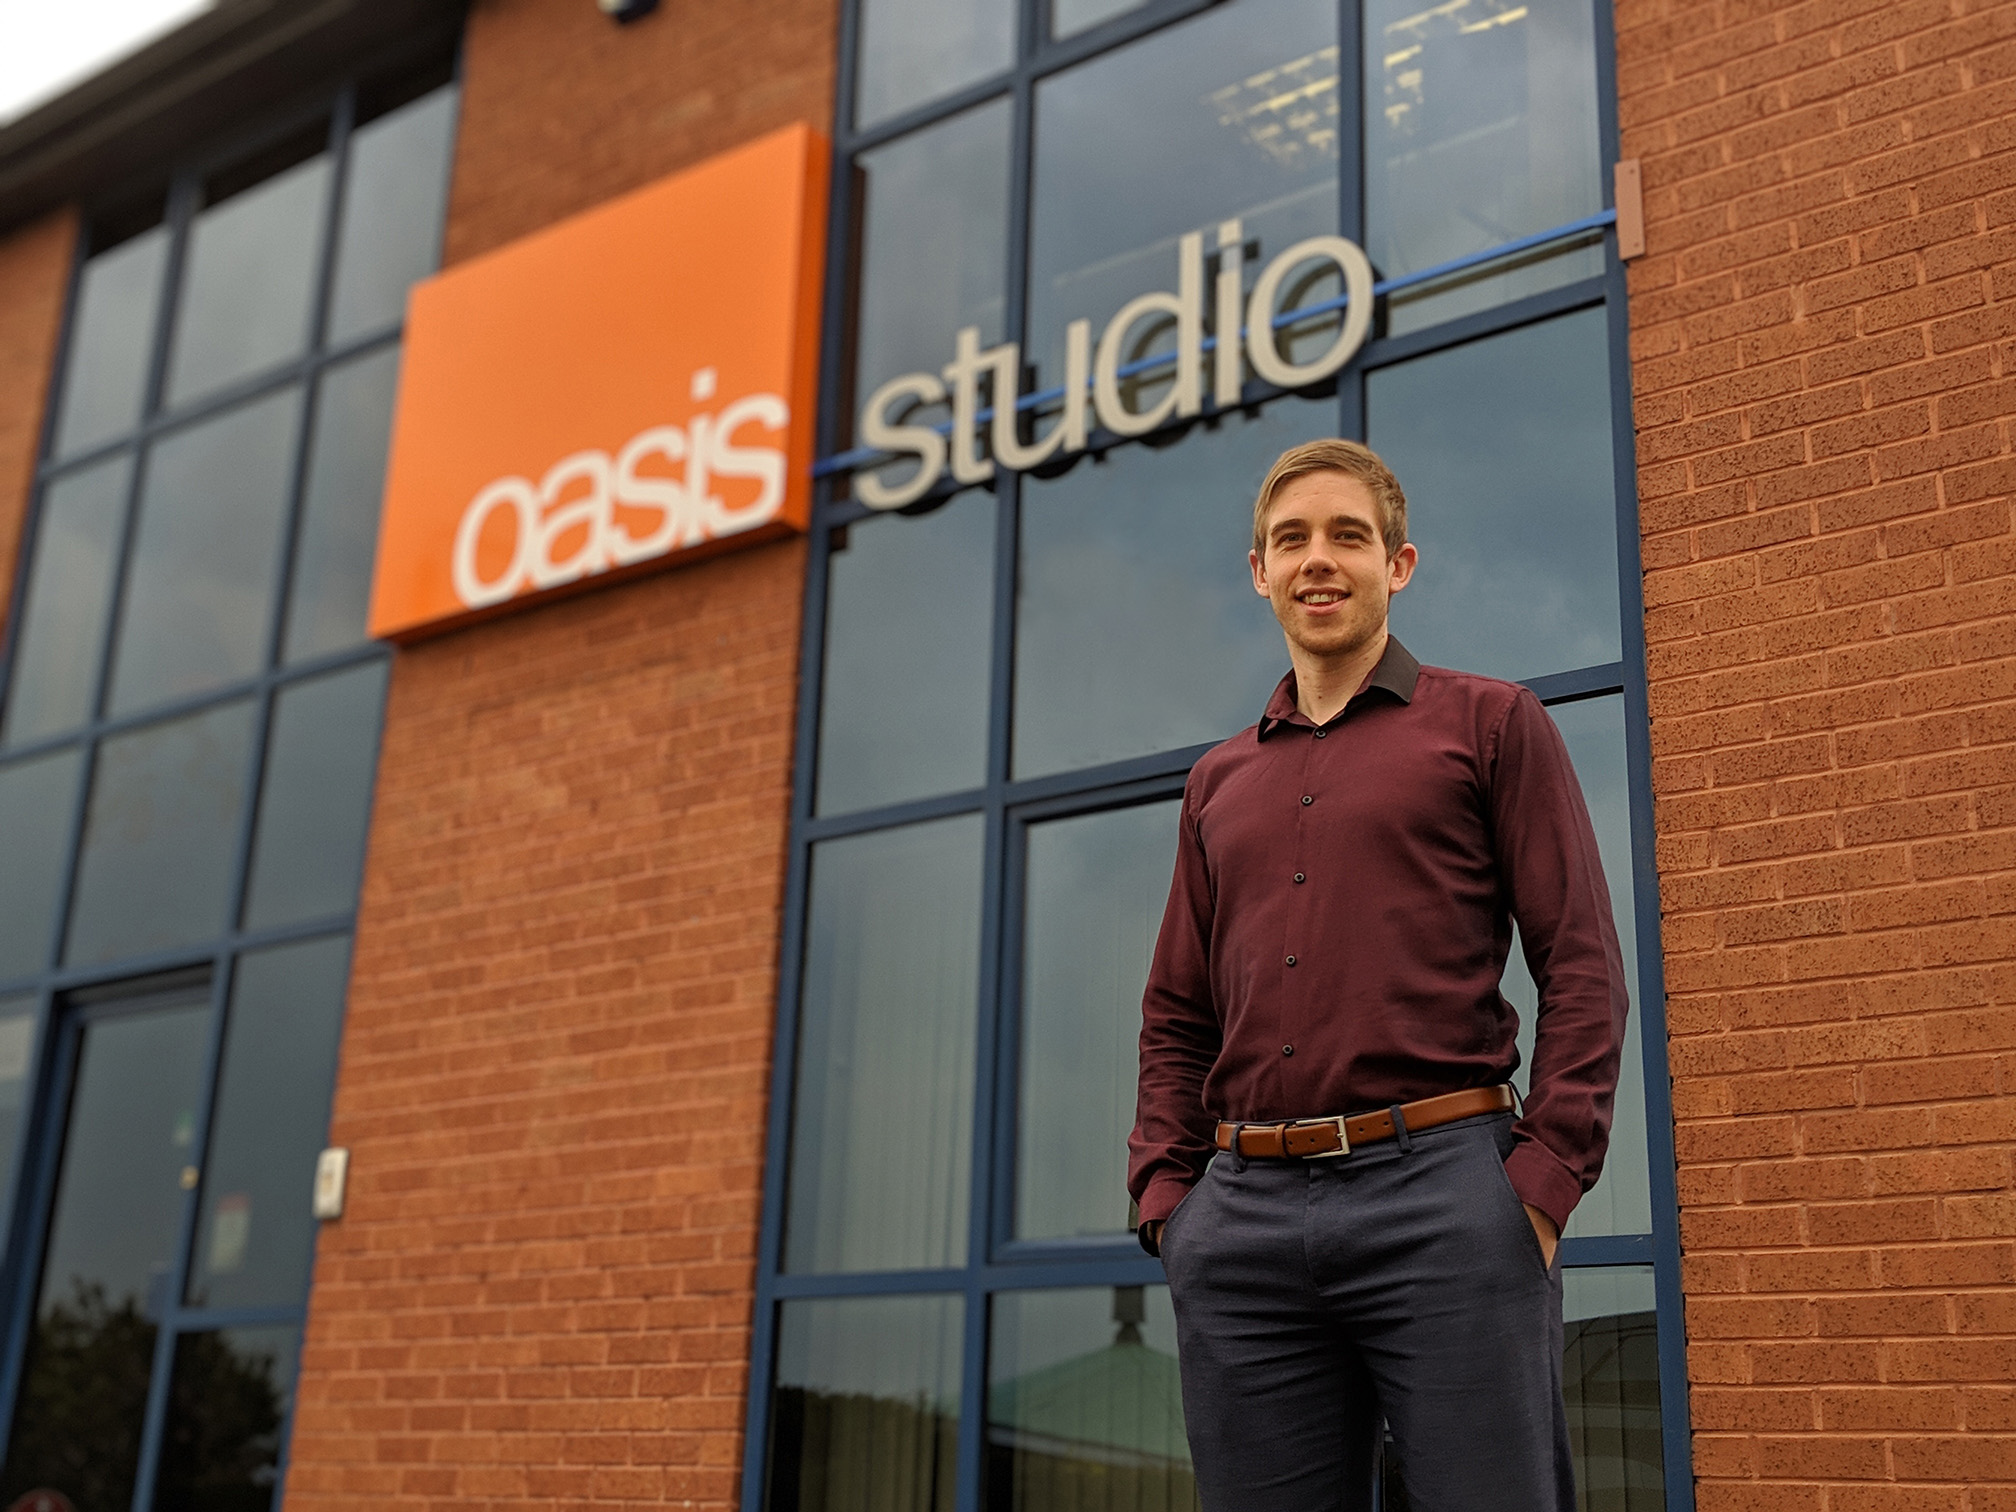 Meet Tony Buck, our Associate Director here at Oasis Studio